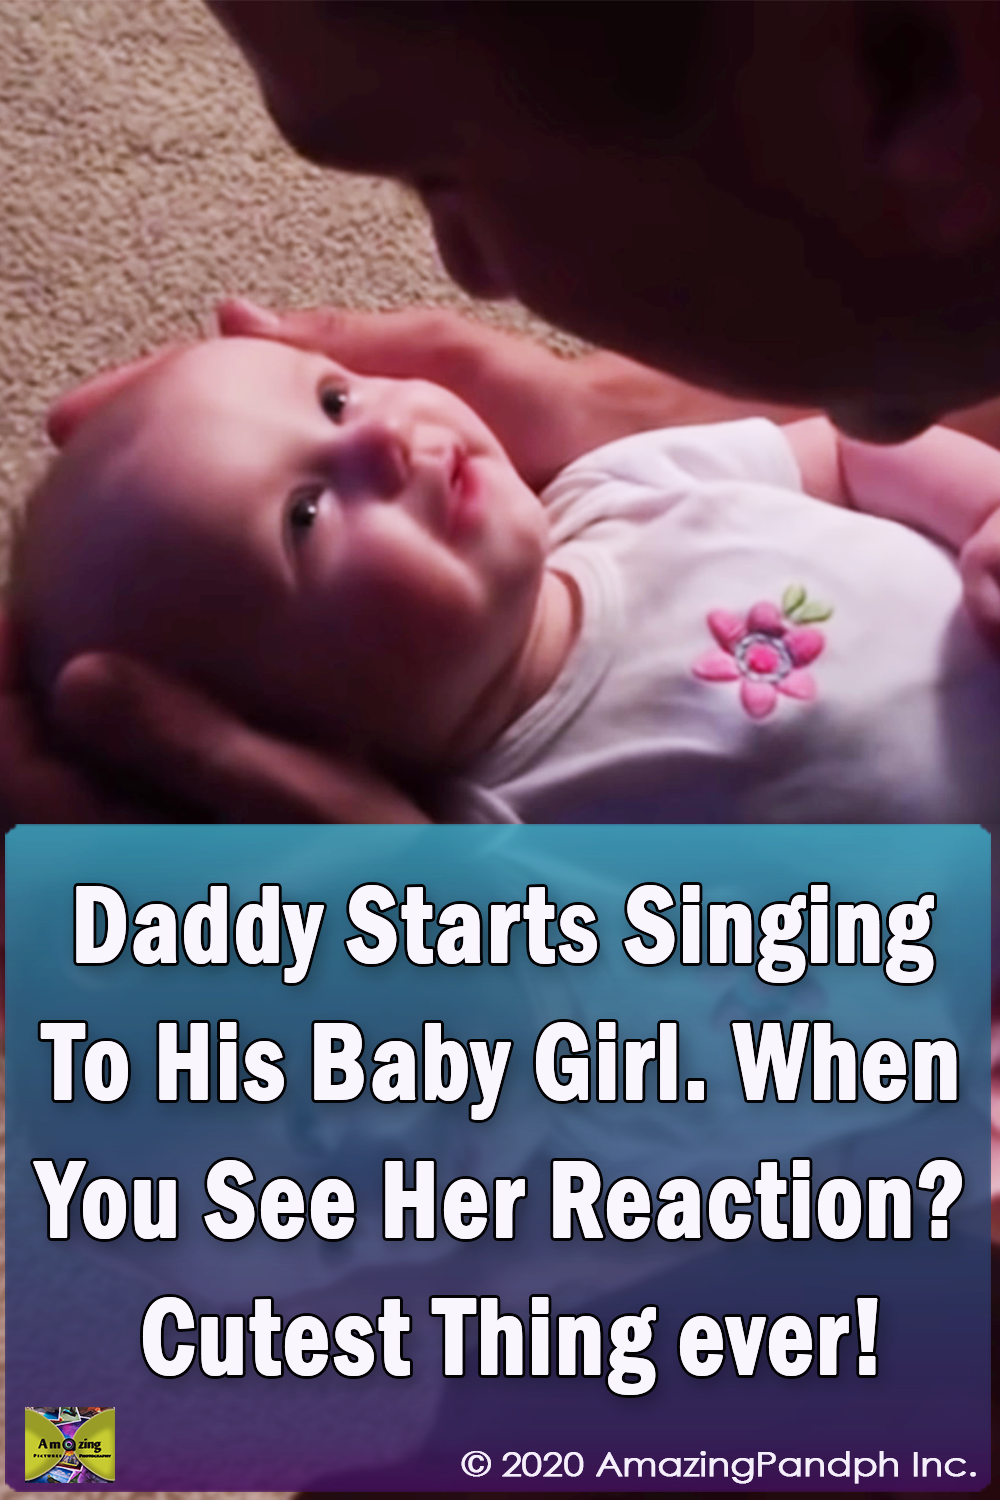 Daddy, Singing, Baby Girl, Baby, song, cutest thing, adorable,